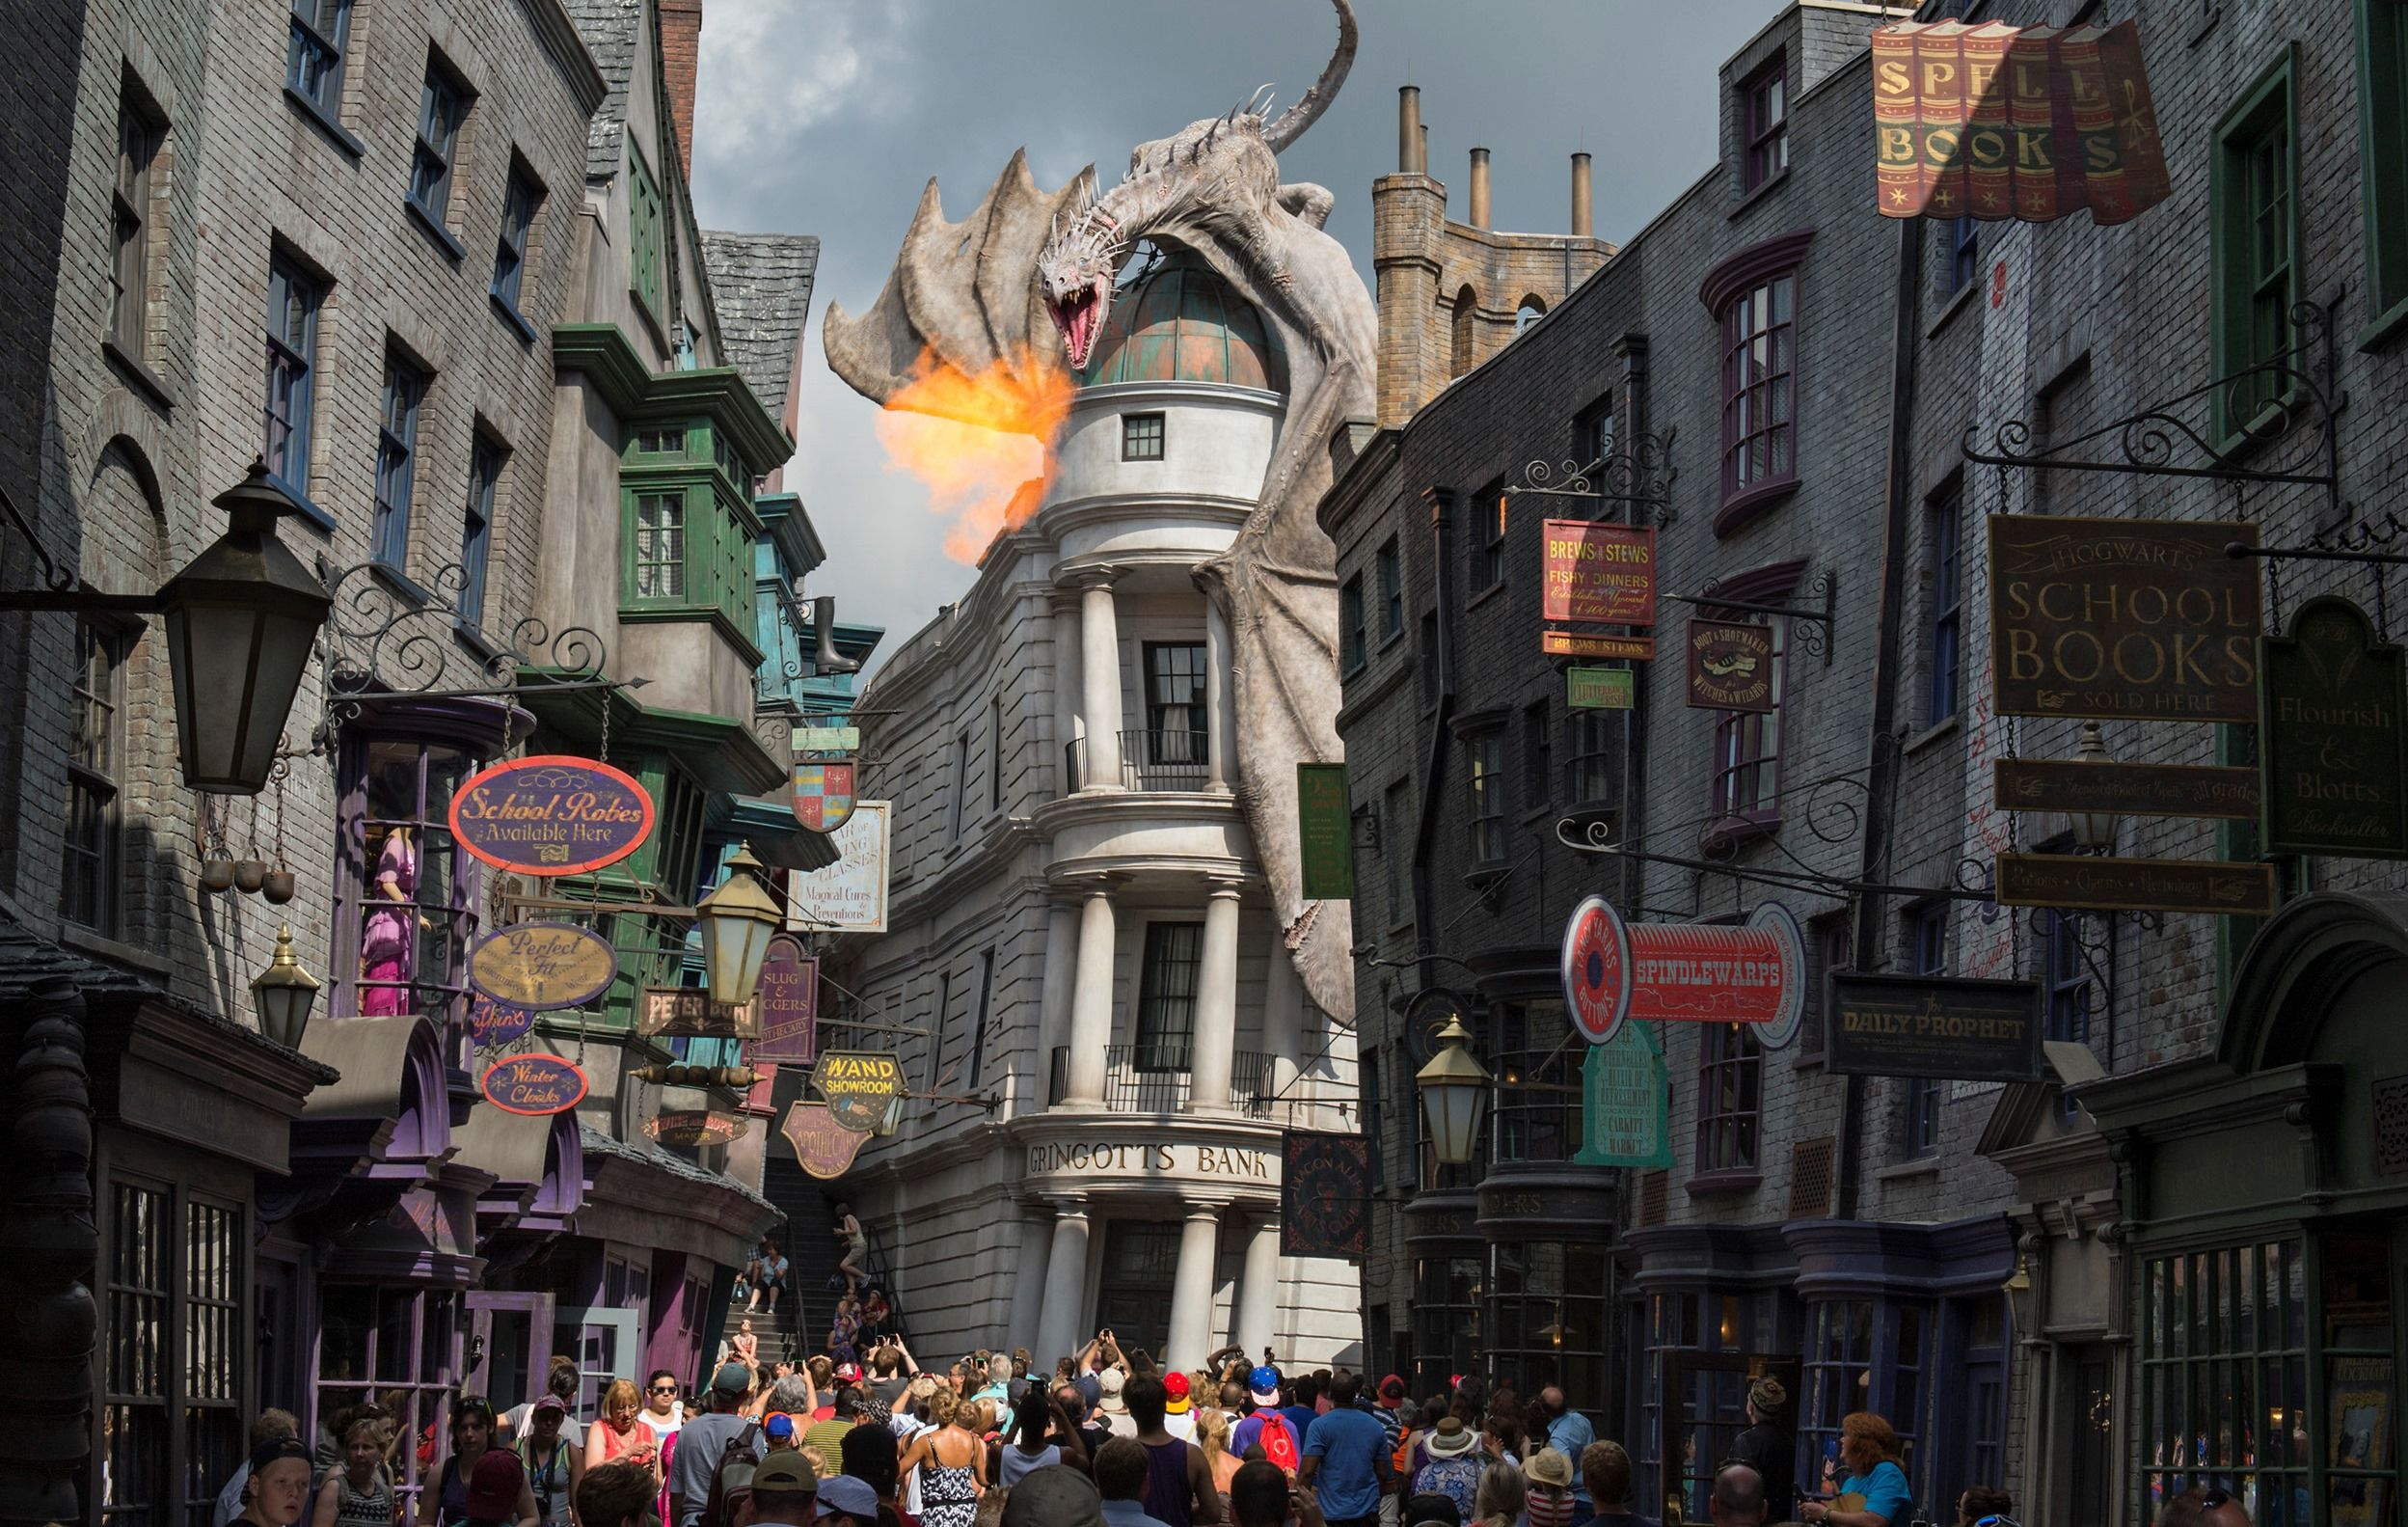 One Day Itinerary For Visiting Harry Potter At Universal Studios Harry Potter Universal Studios Harry Potter Universal Universal Studios